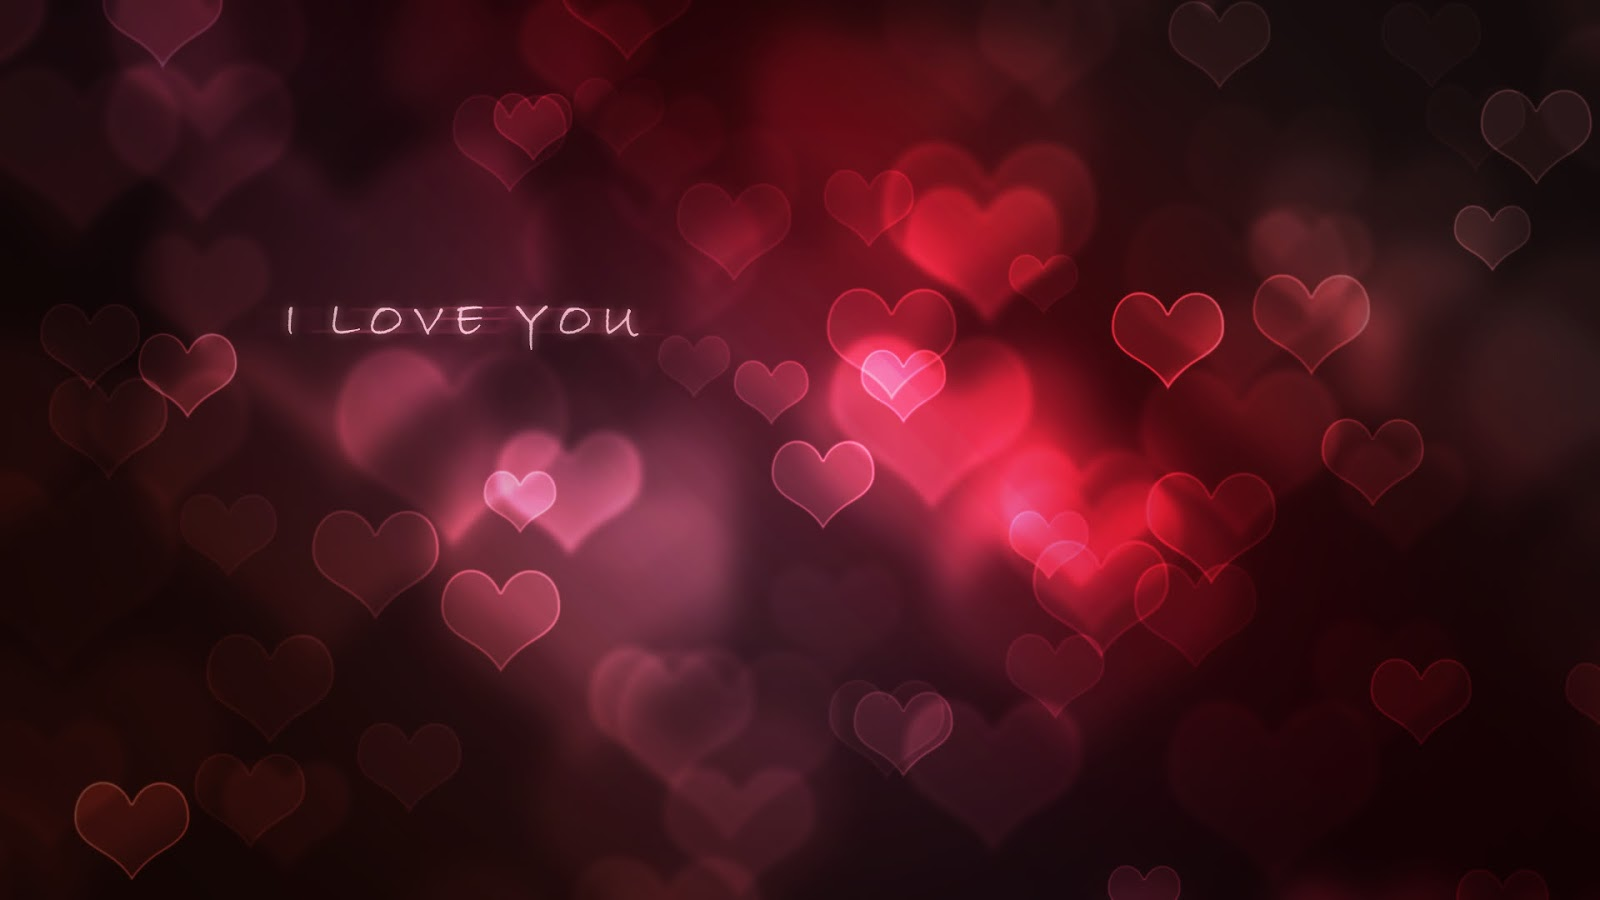 love you wallpaper: